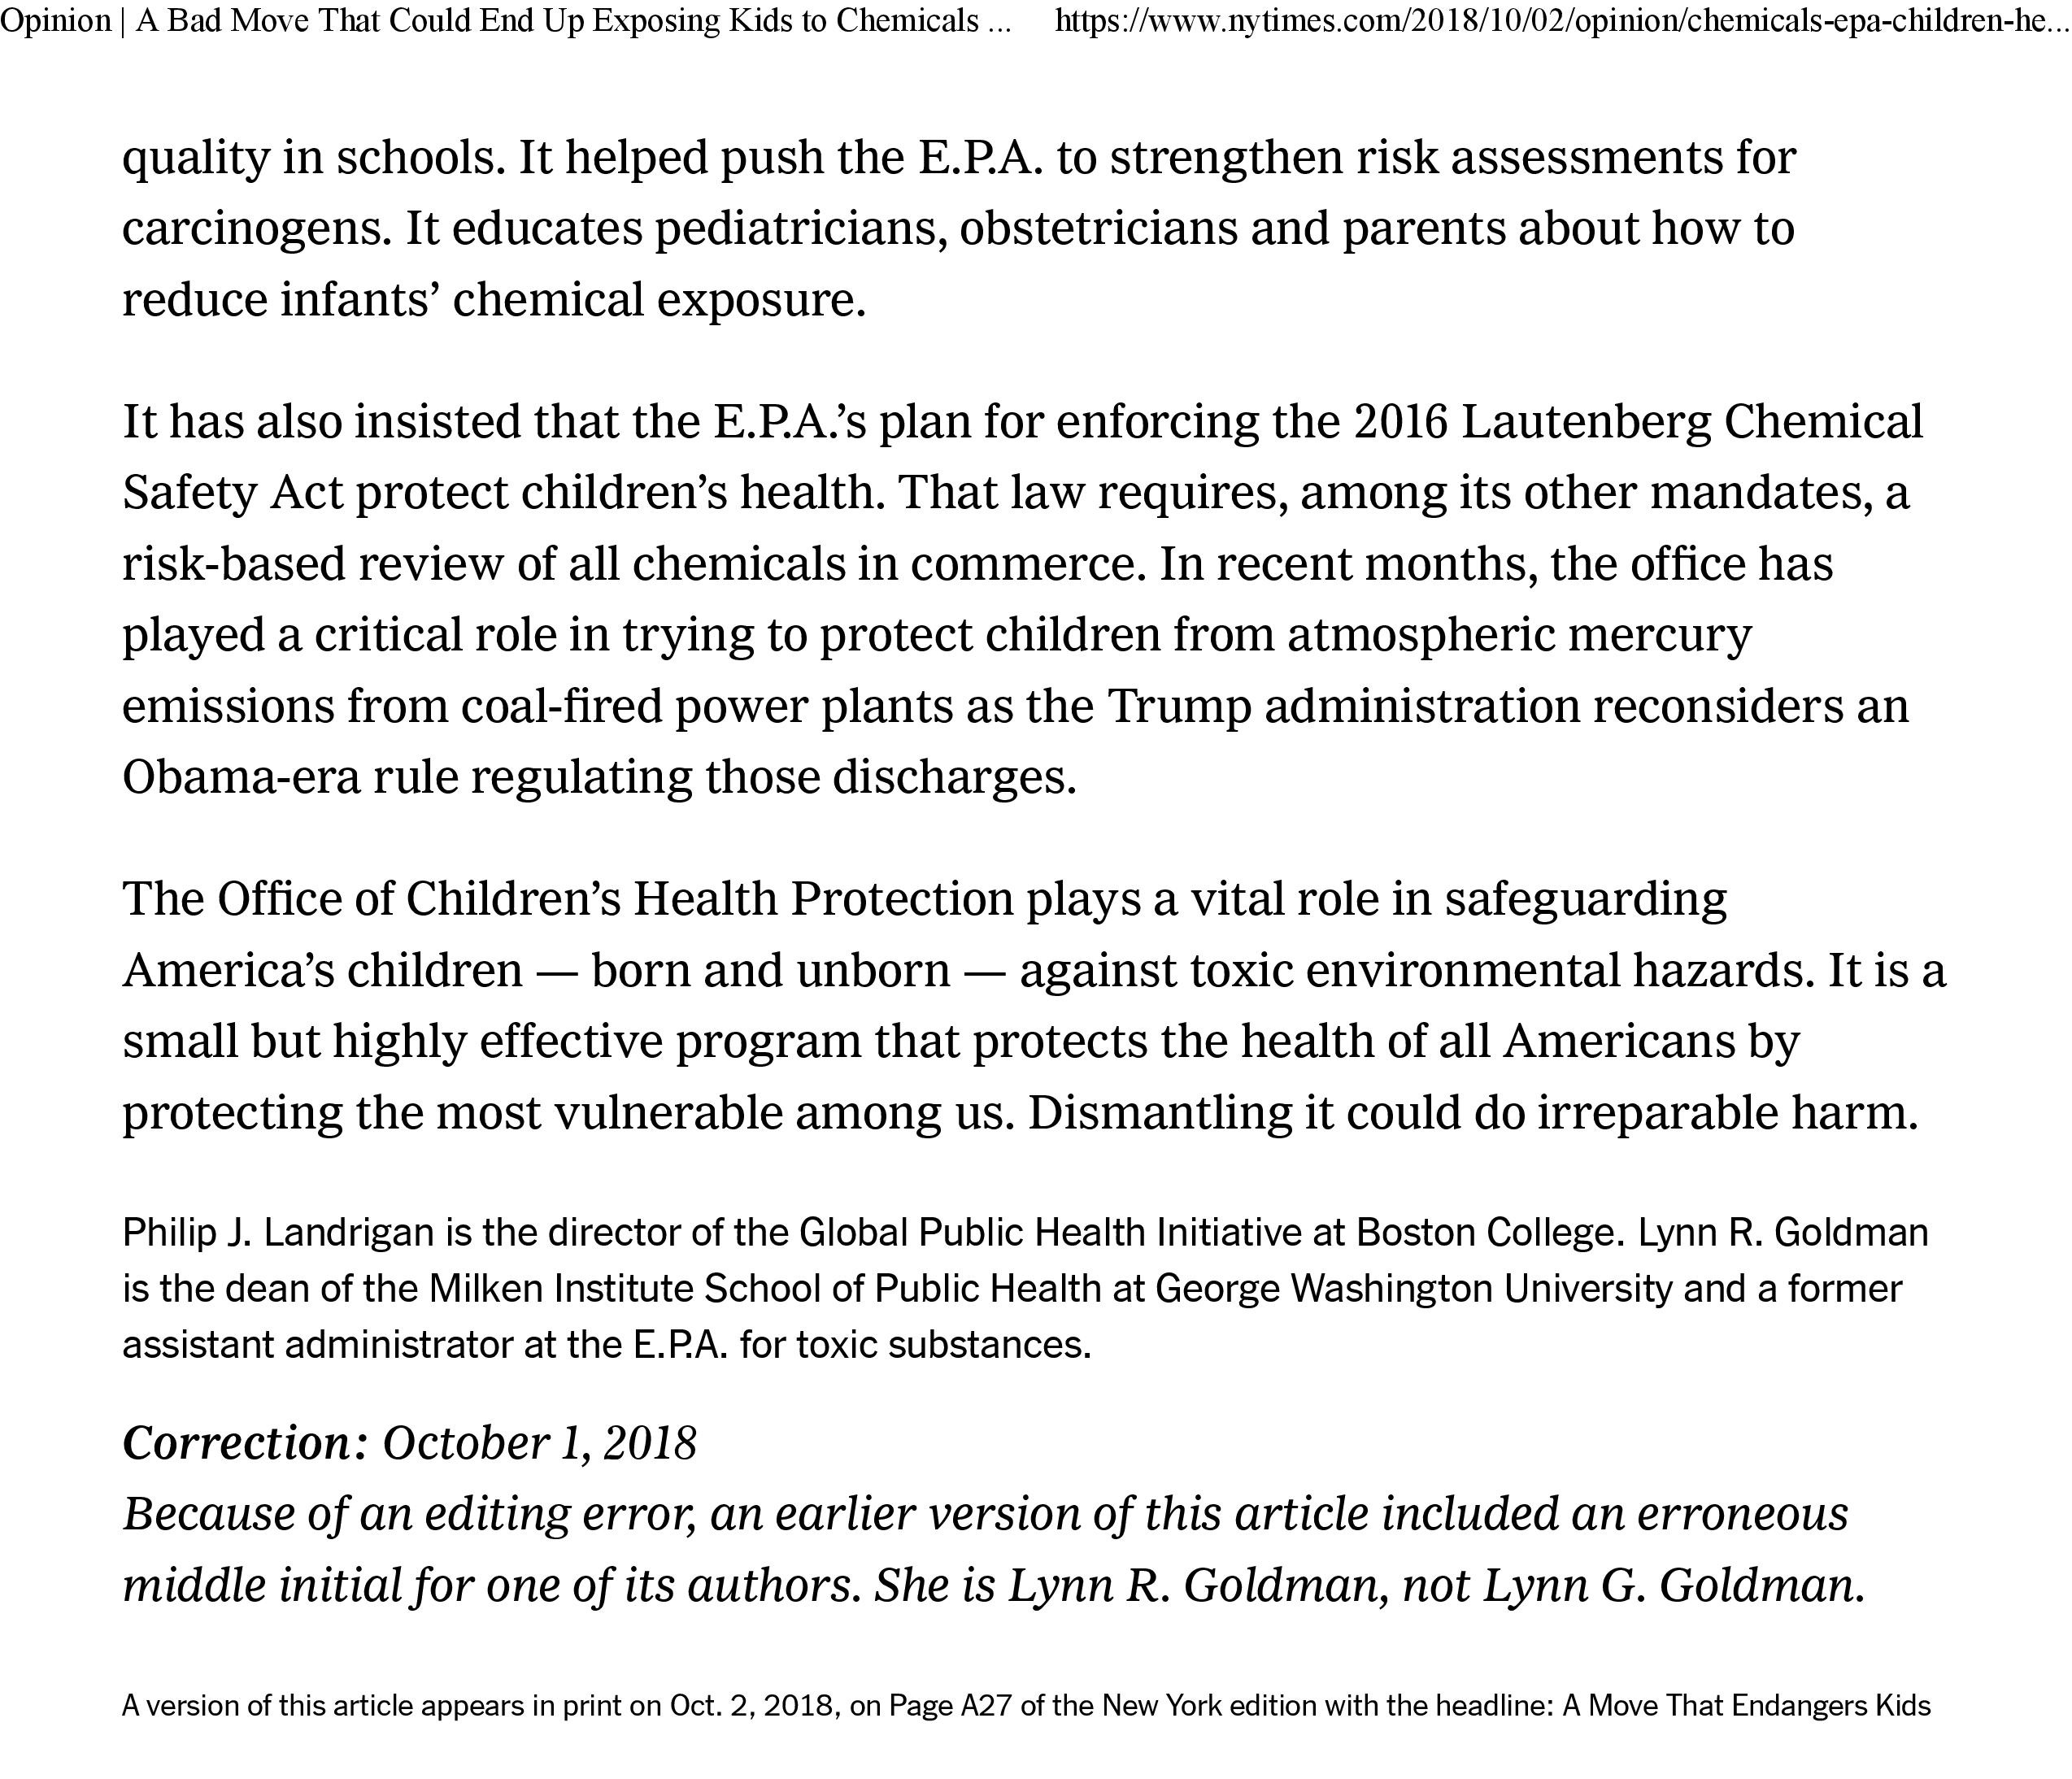 Opinion - A Bad Move That Could End Up Exposing Kids to Chemicals - The New York Times-page-004